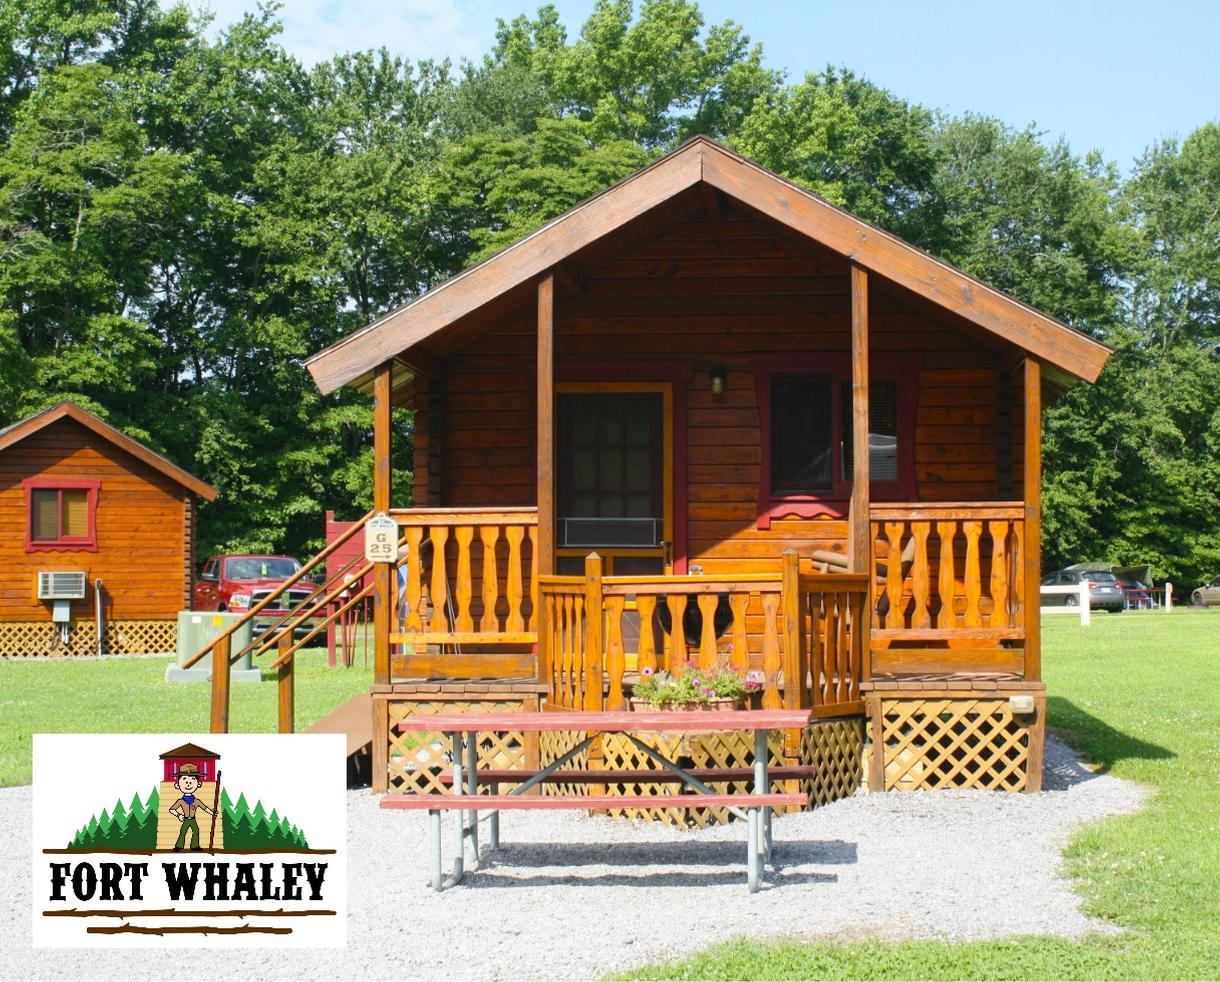 2-Night Stay in a Barebones Cabin at Fort Whaley, Valid Sundays-Thursdays ONLY through October 2018